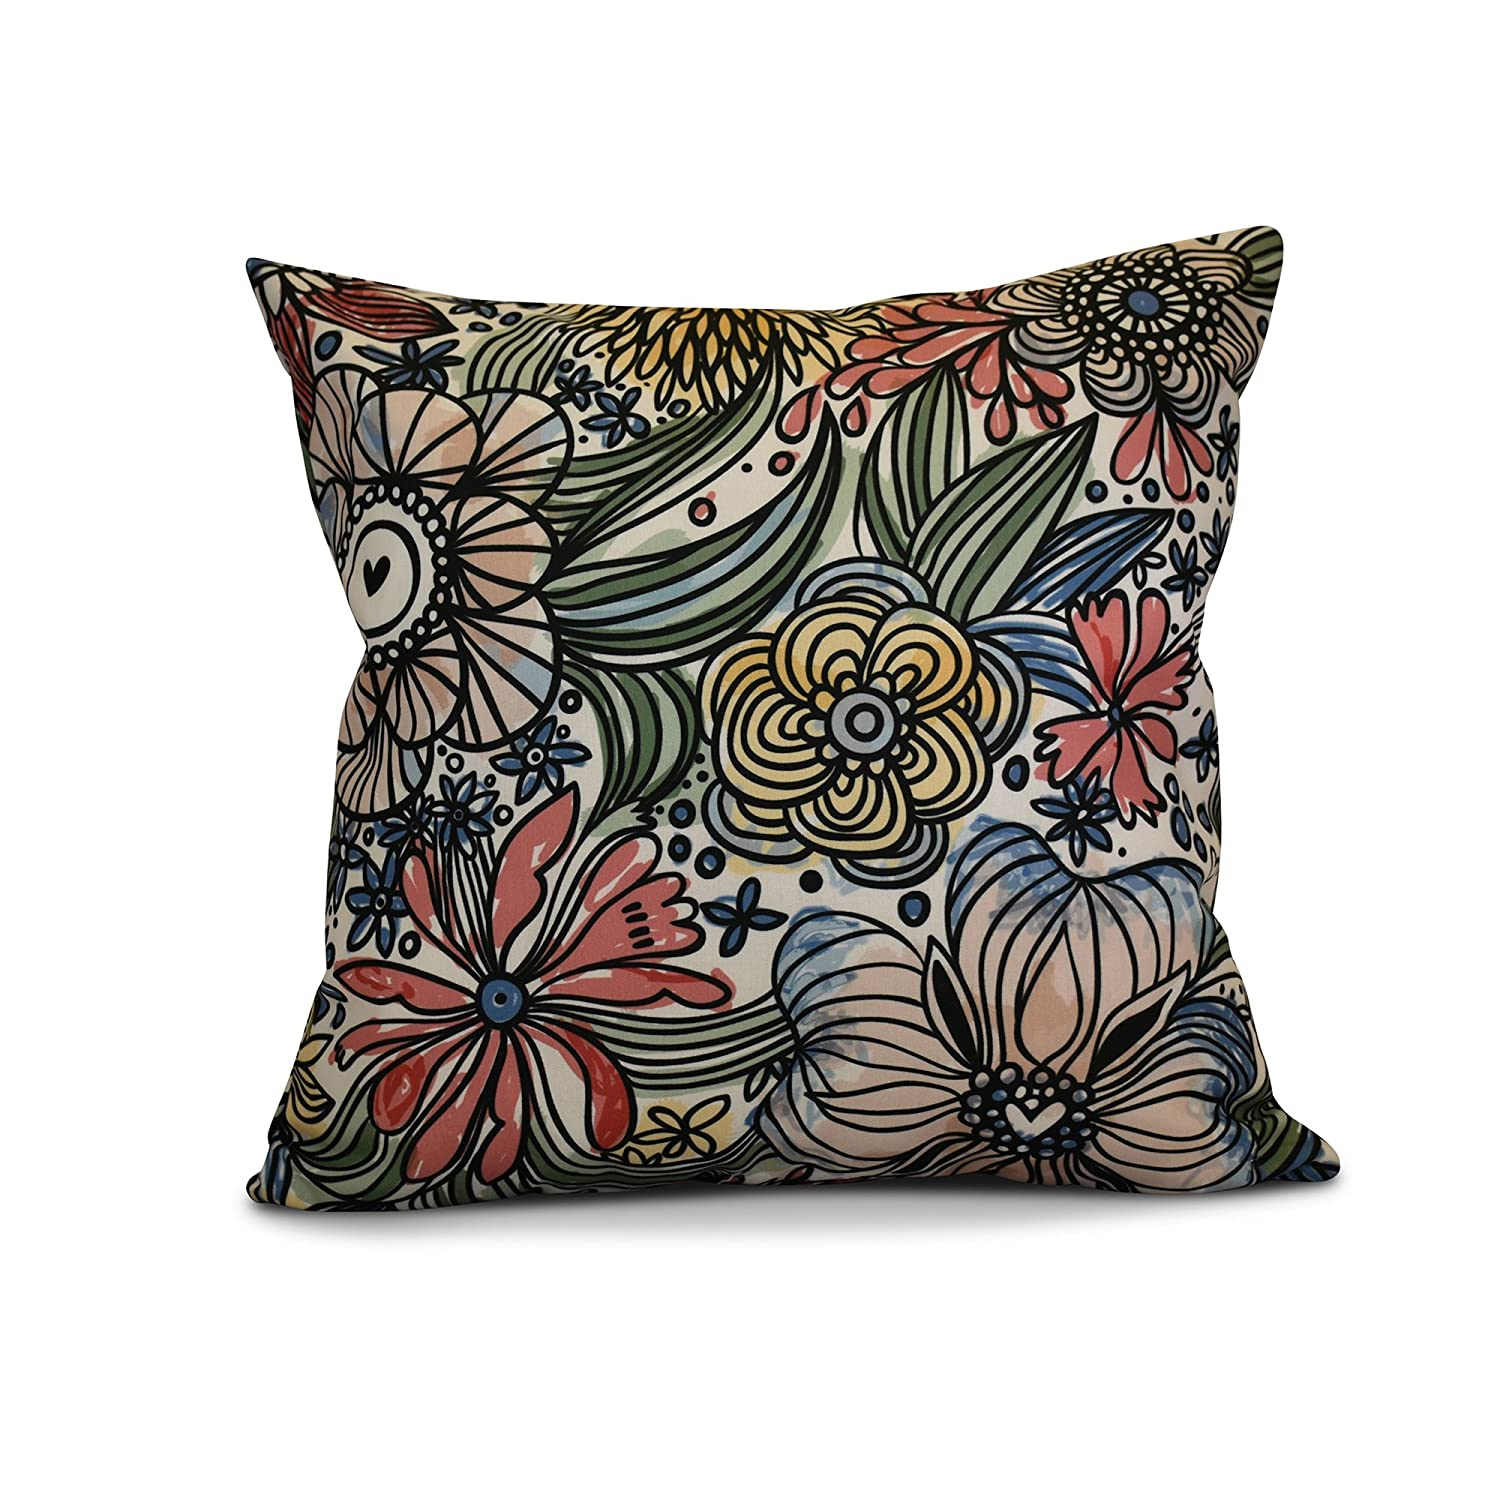 E by design PFN735RE2-20 20 x 20-inch 20x20 Red Floral Print Zentangle